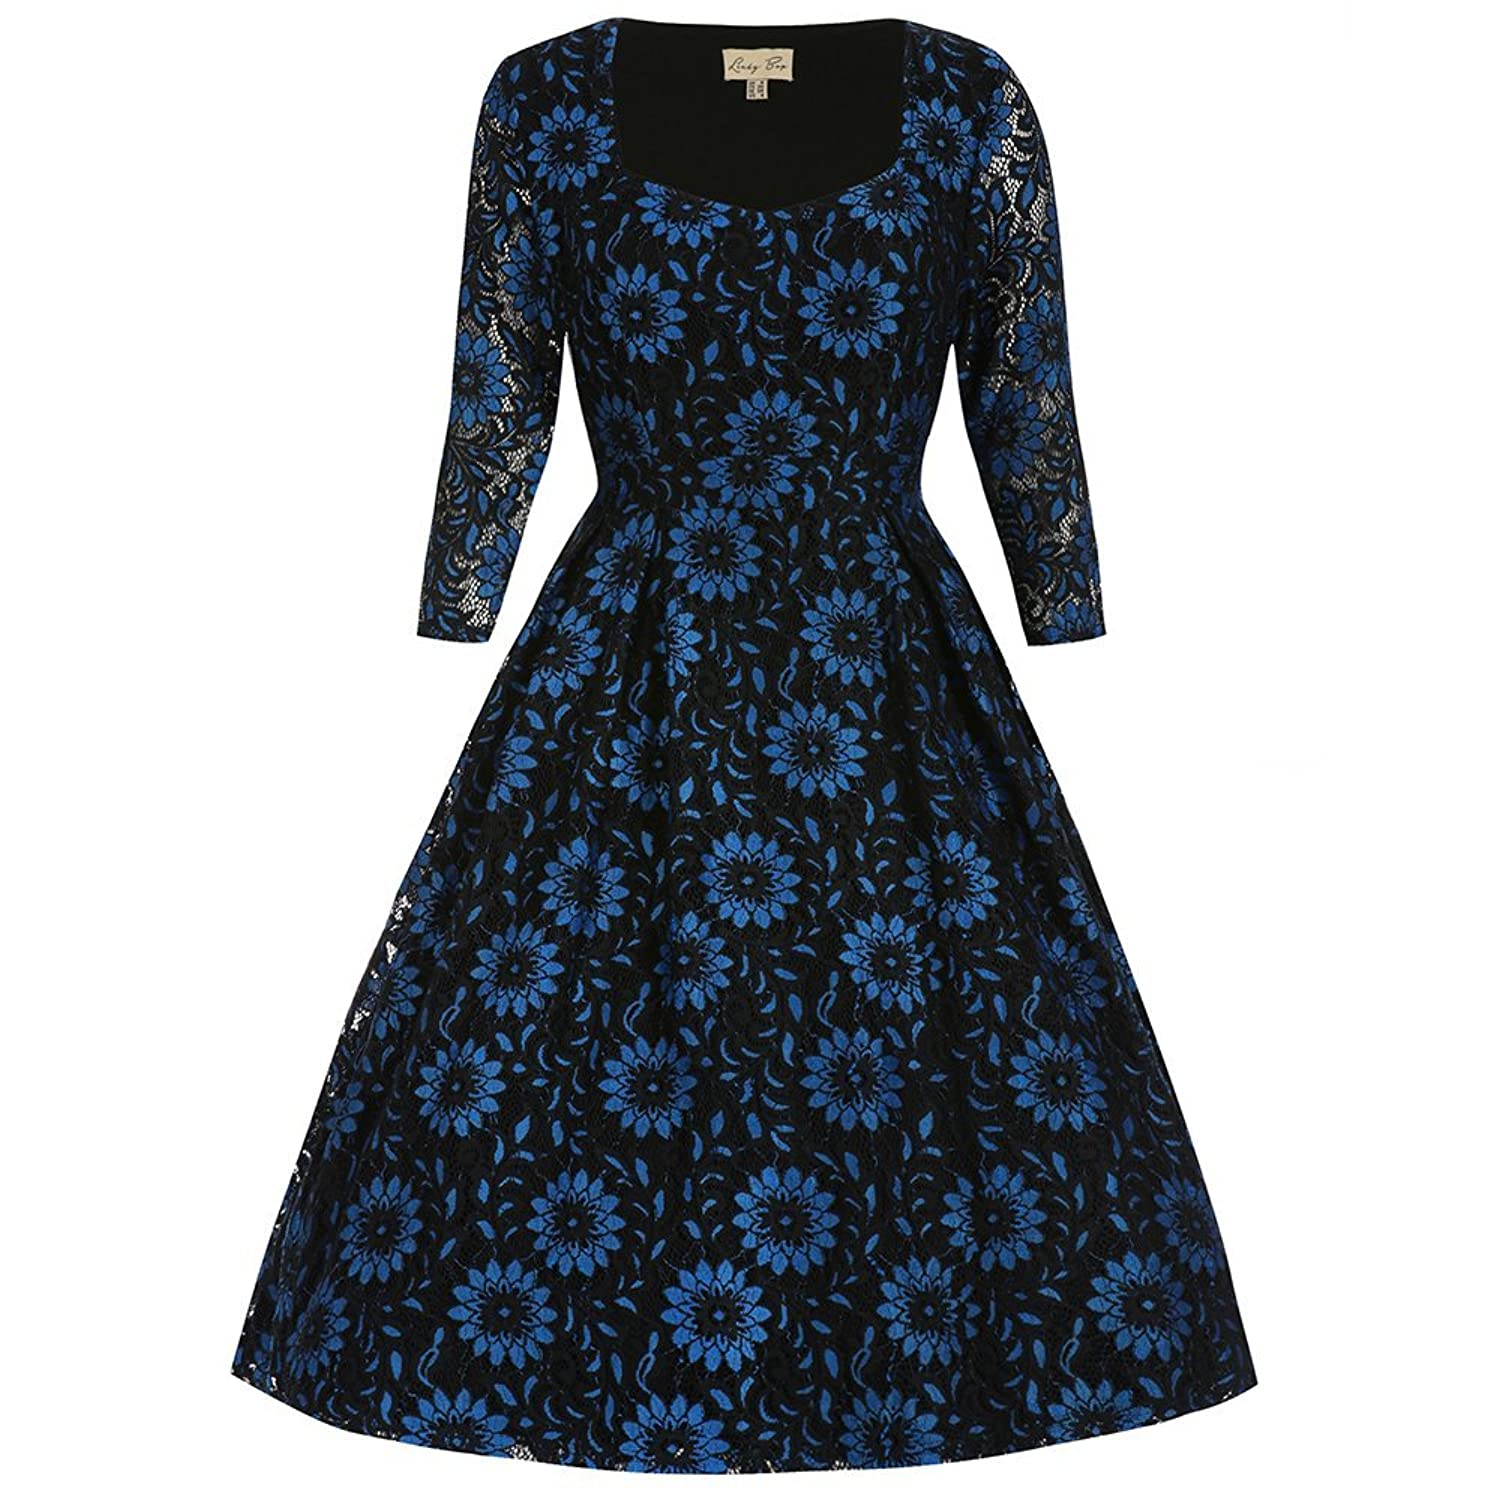 Lindy Bop Women's Lisette Blue Black Dress